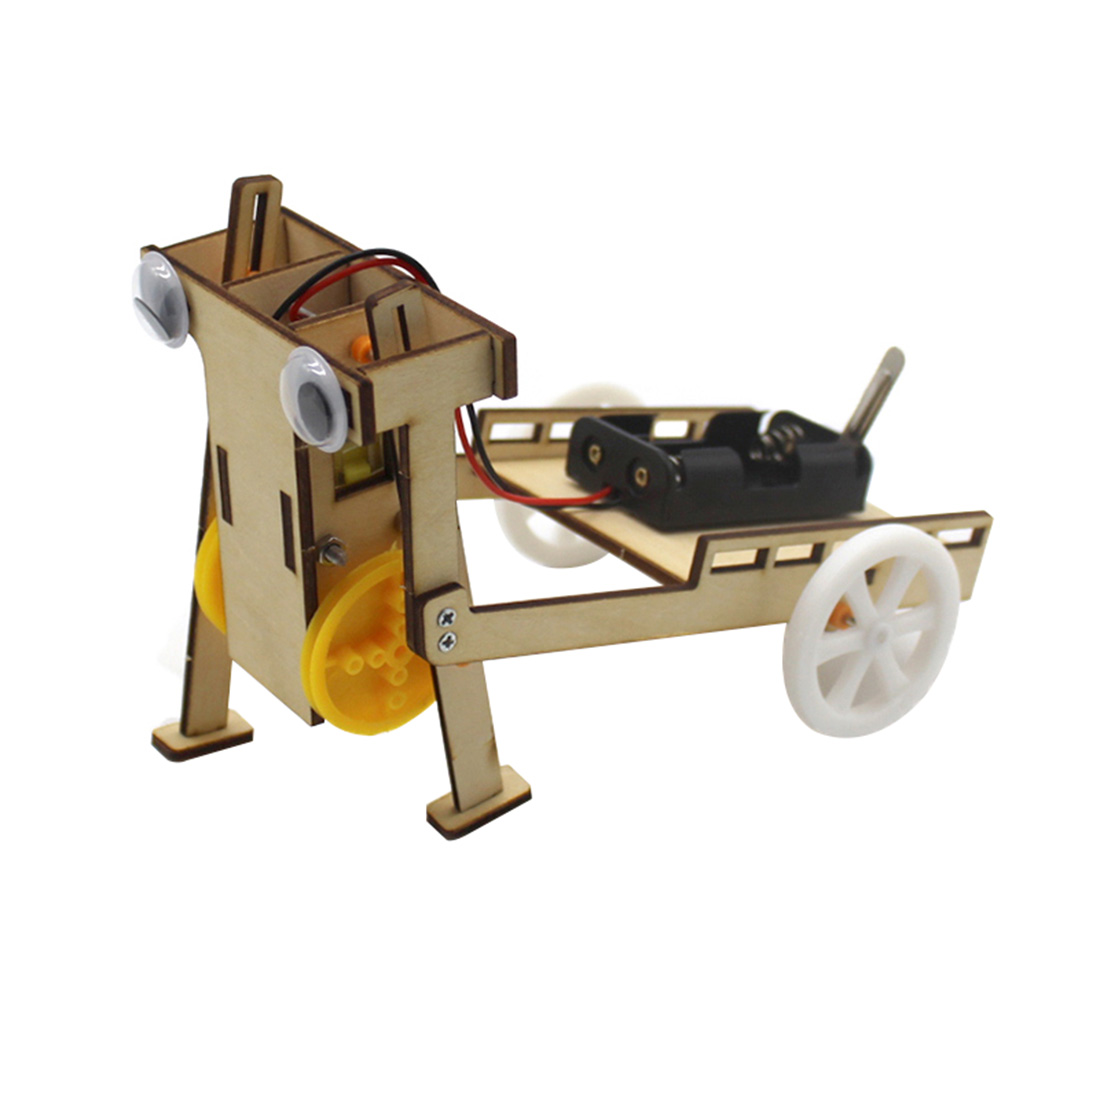 145*100*112 Mm DIY Electric Assemble Walking Robot 2WD Trolley Car Kit Education Science Experiments Toys Invention Kids